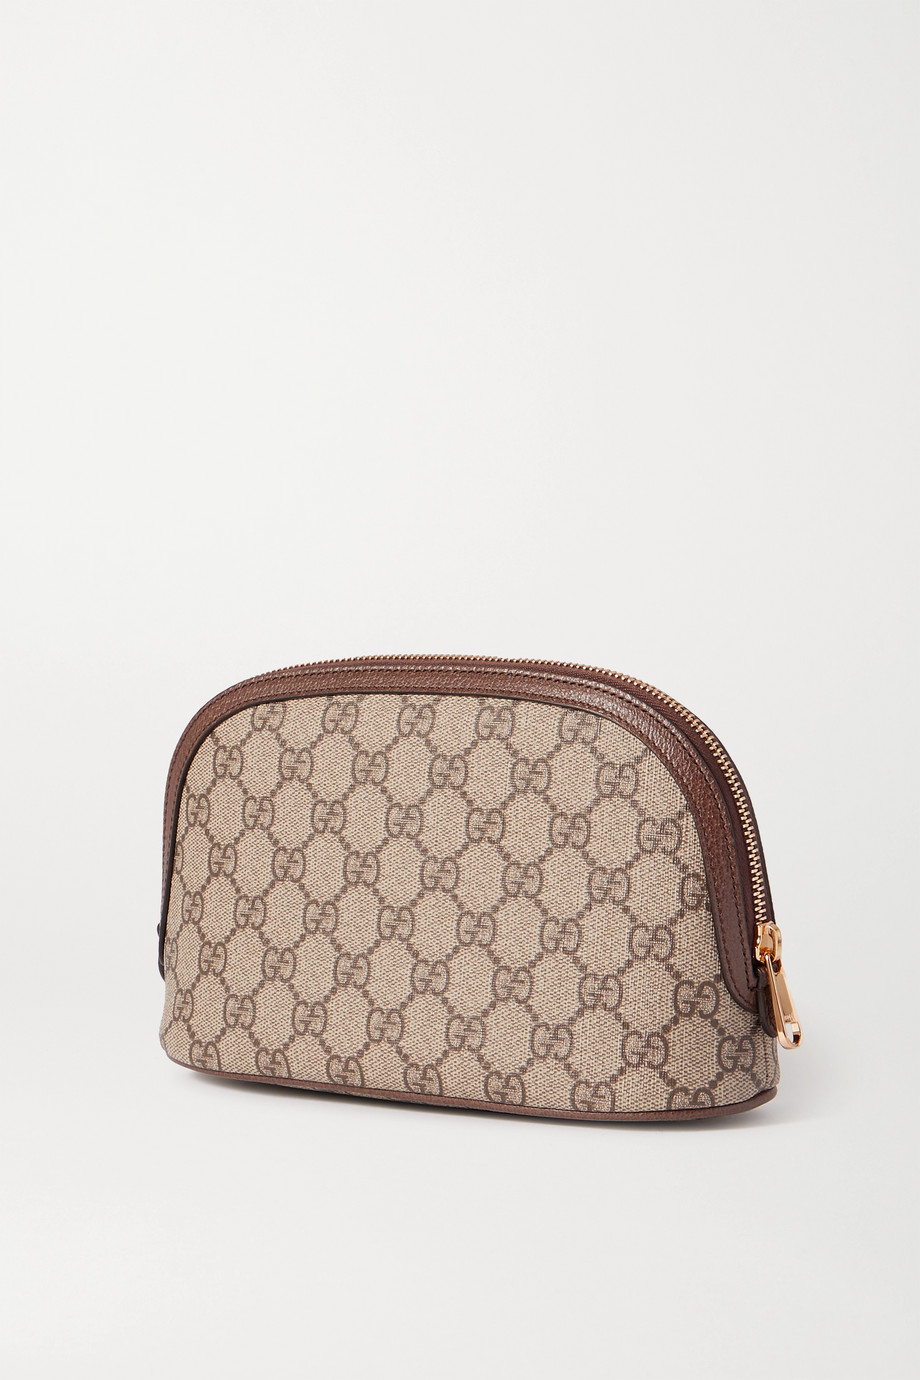 GUCCI Leather-trimmed printed coated-canvas cosmetics case